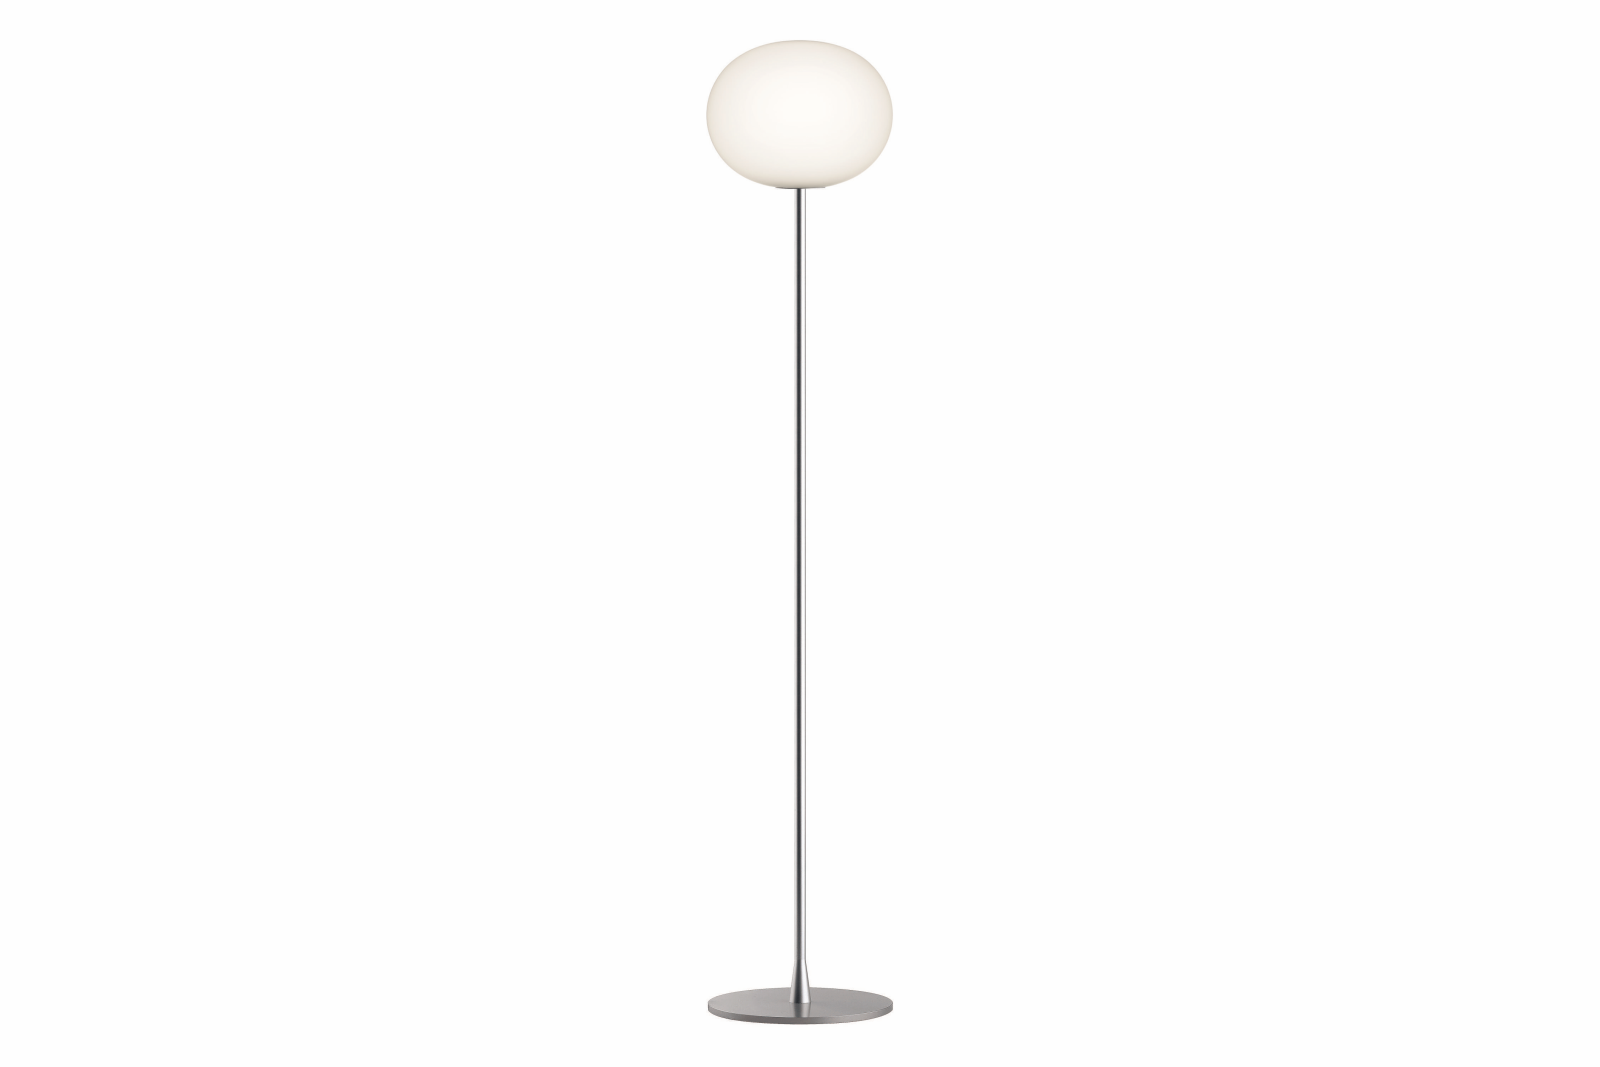 Glo-Ball F Floor Lamp F3, Extra Large, Dimmer